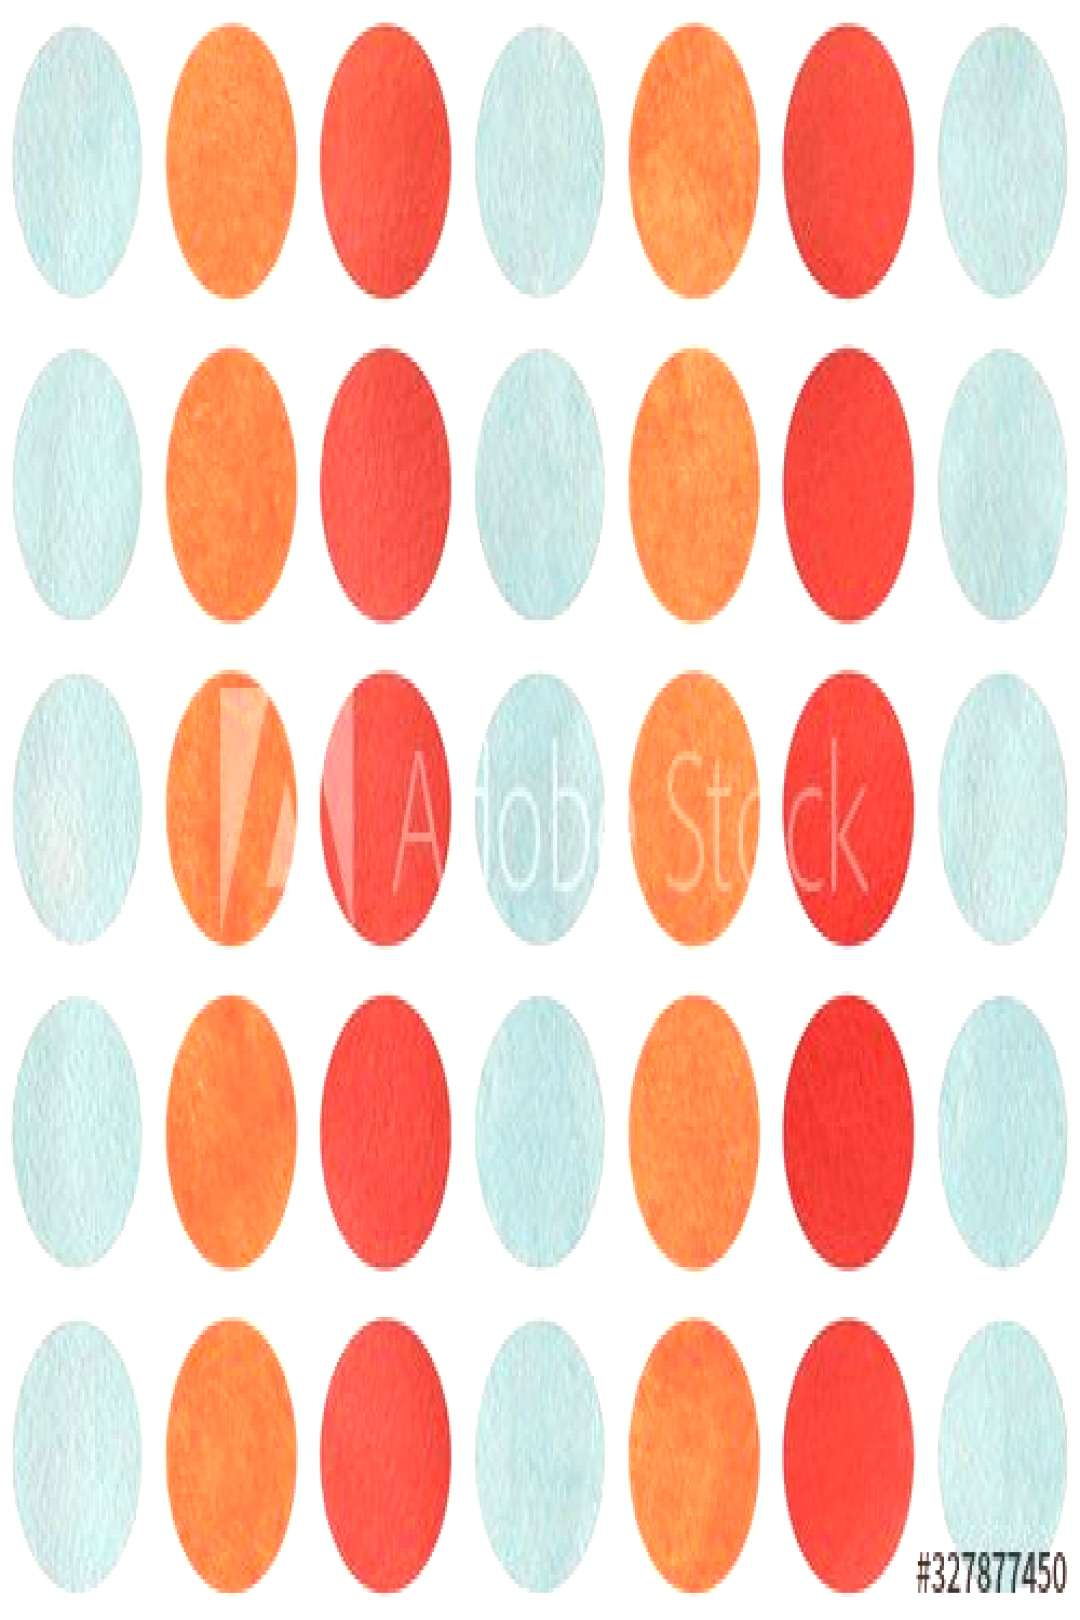 Watercolor circles on white background. ,